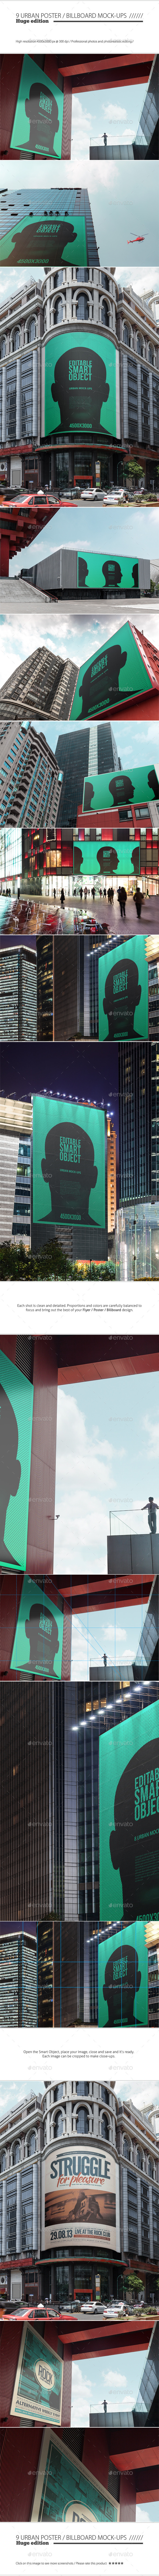 GraphicRiver Urban Poster Billboard Mock-ups Huge Edition 8958149